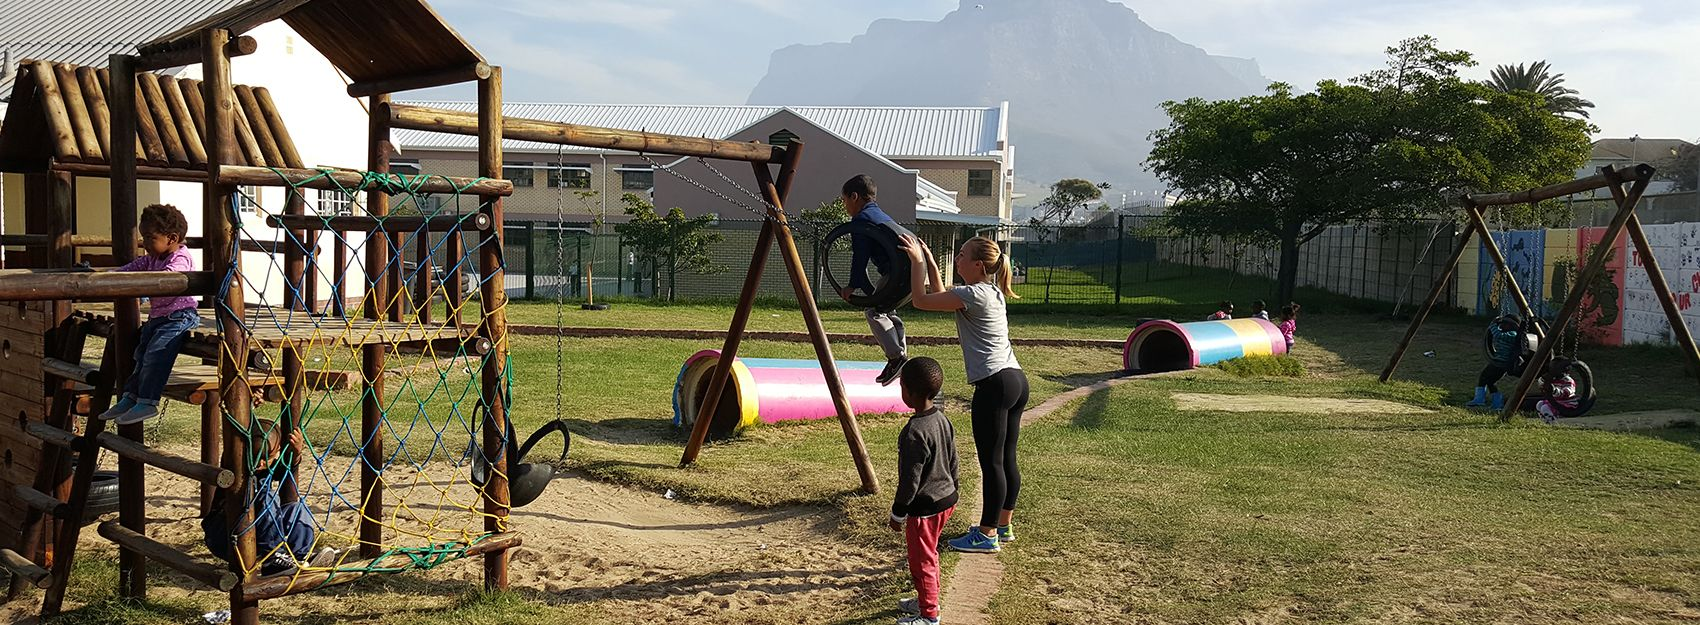 student pushing children on a swing